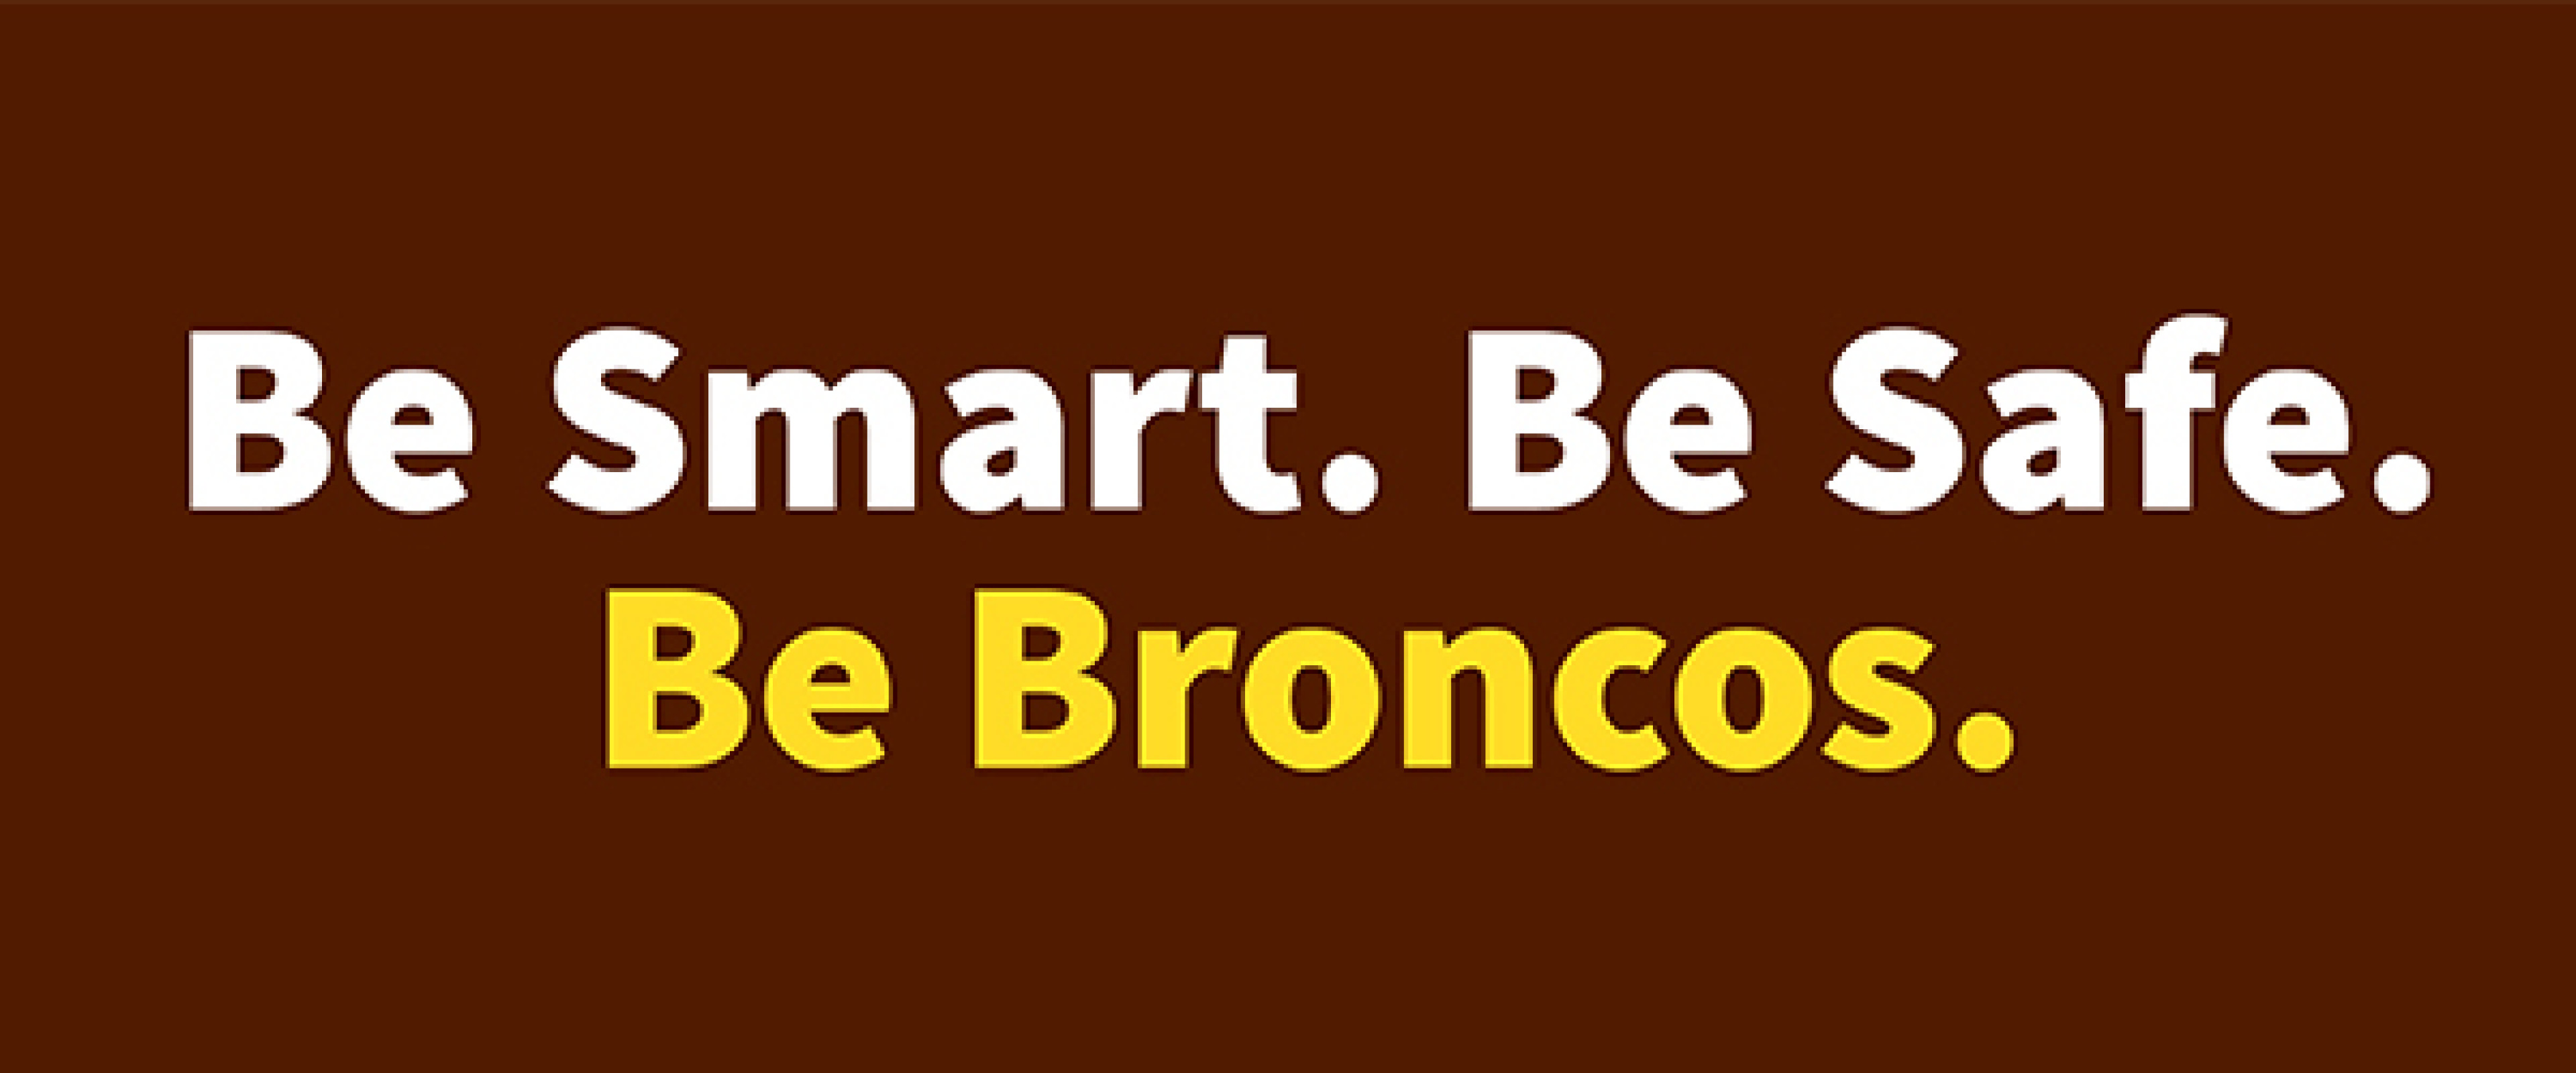 Be smart. Be safe. Be Broncos.